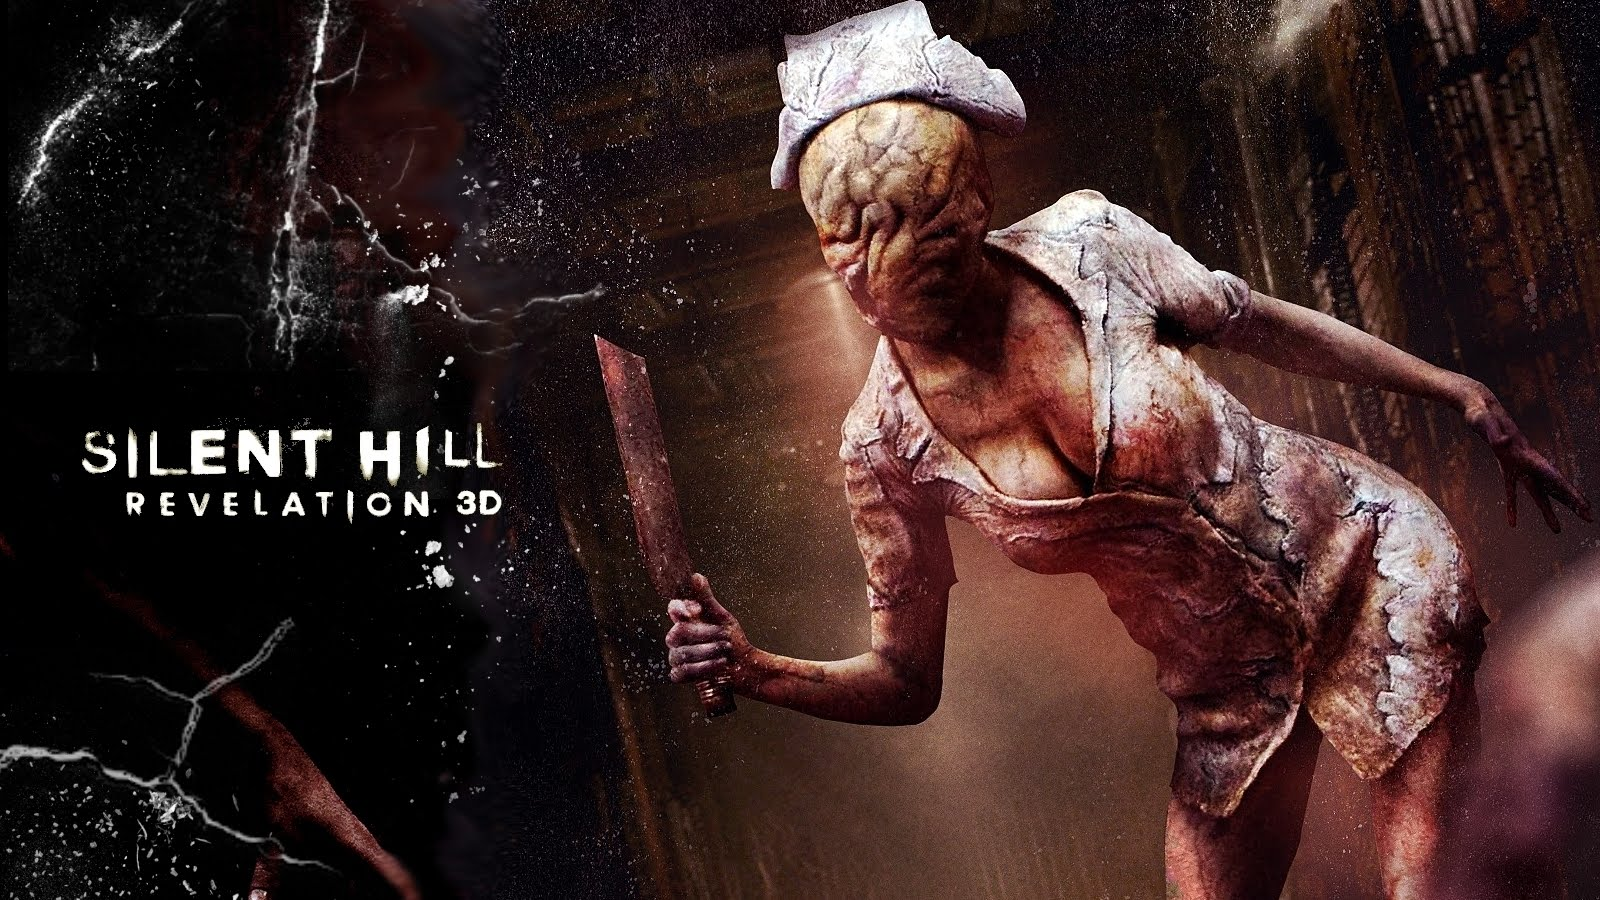 silent hill revelation 2012 dawning creates